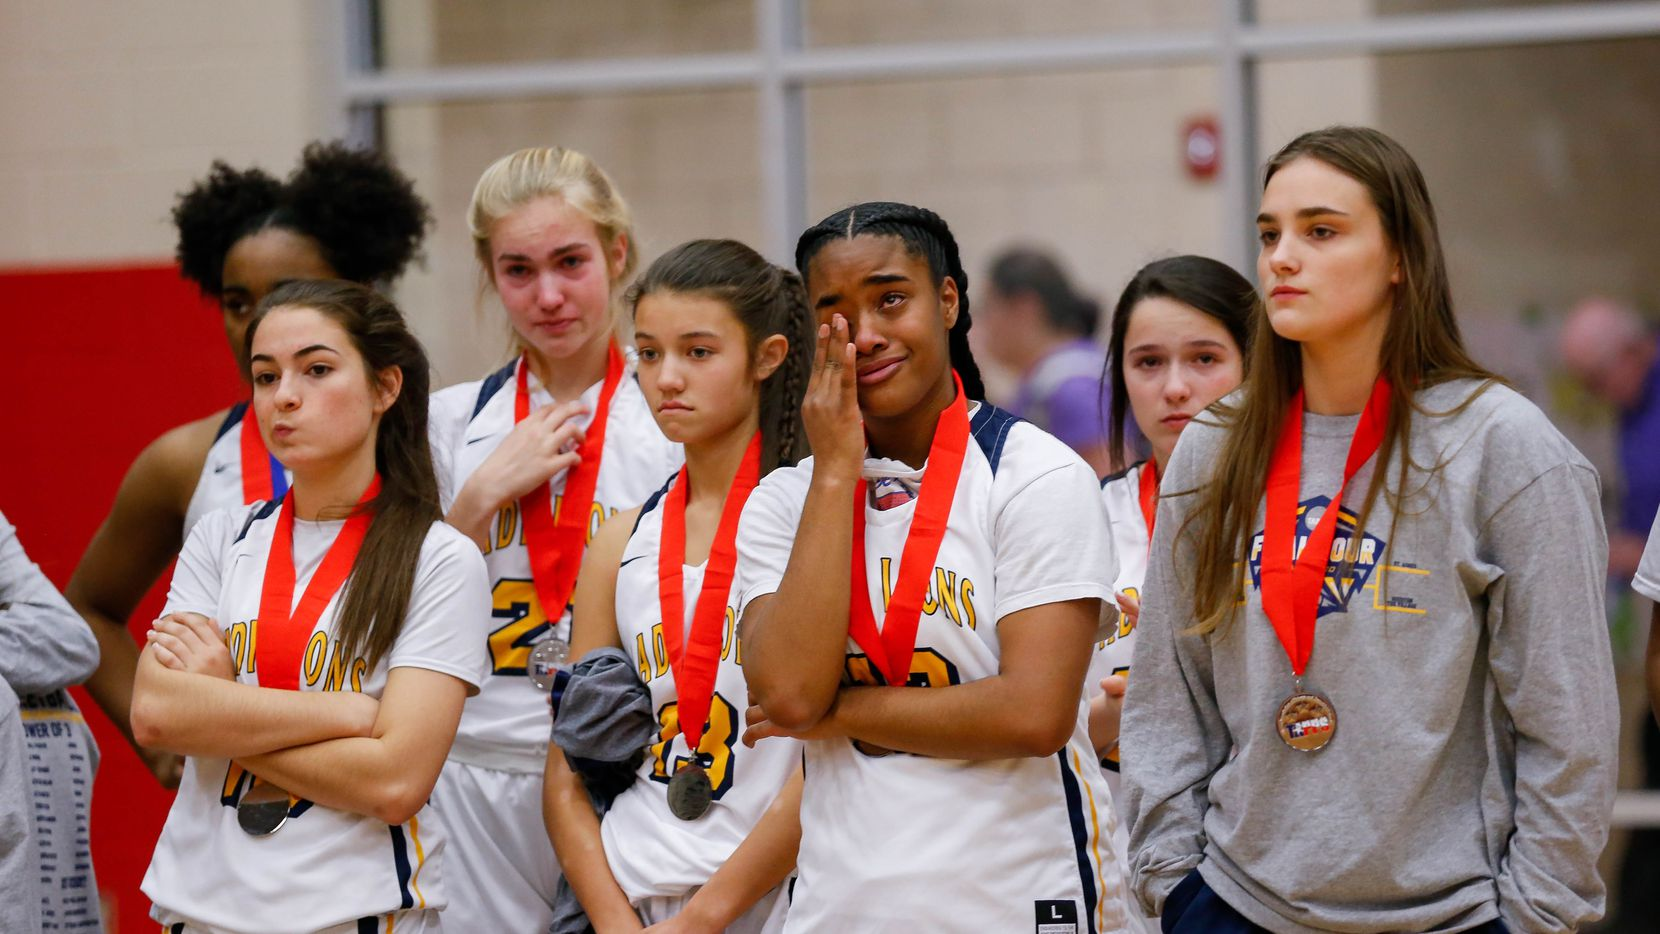 Plano Prestonwood Christian players react after losing a TAPPS Class 6A girls basketball state championship game against the Village School on Feb. 28, 2020 in West. Prestonwood lost 75-48.